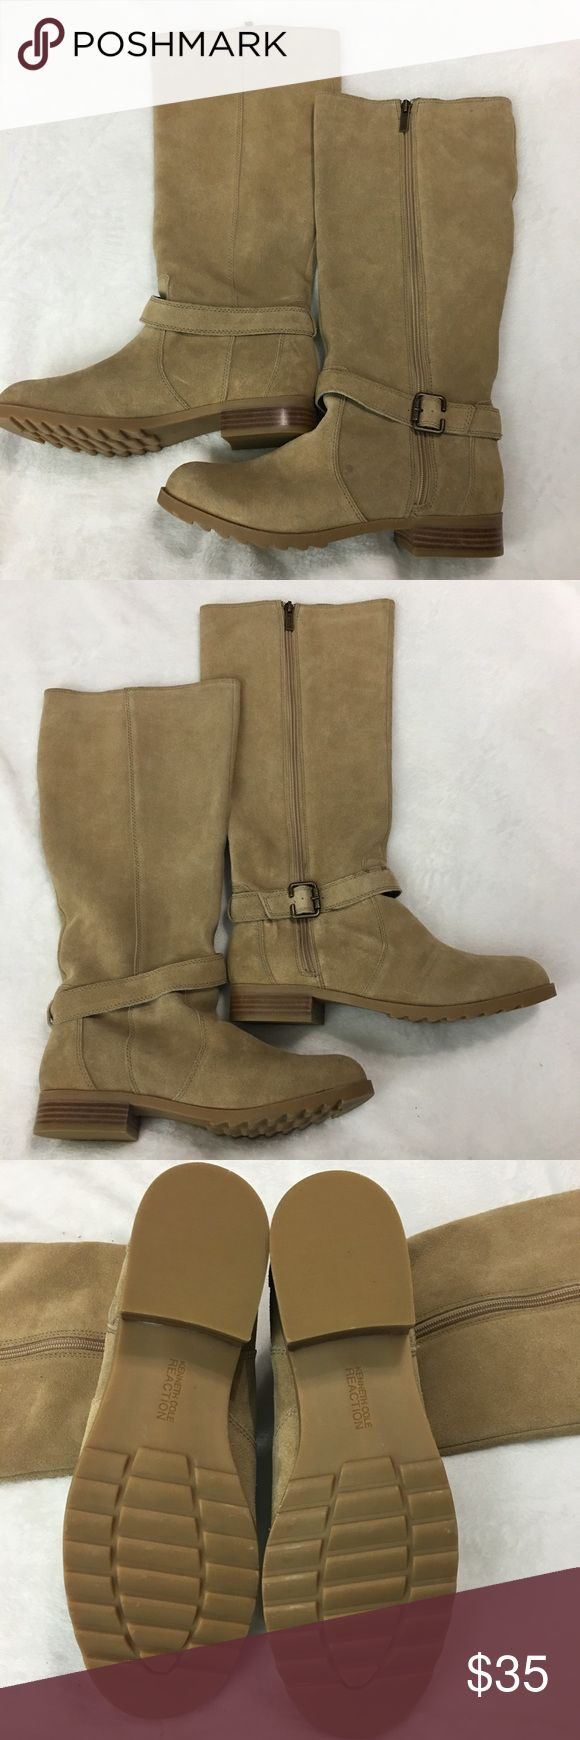 """Kenneth Cole Reaction Skinny Love Boots Size 10M This is a pair of New Without Box women's Kenneth Cole Reaction Skinny Love Tan Leather Boots Size 10M. These boots are New Without Box and have never been worn. They feature a 1"""" Block Heel and zip up sides. Please take a look at all photos for condition and if you have any questions feel free to ask. Kenneth Cole Reaction Shoes Heeled Boots"""